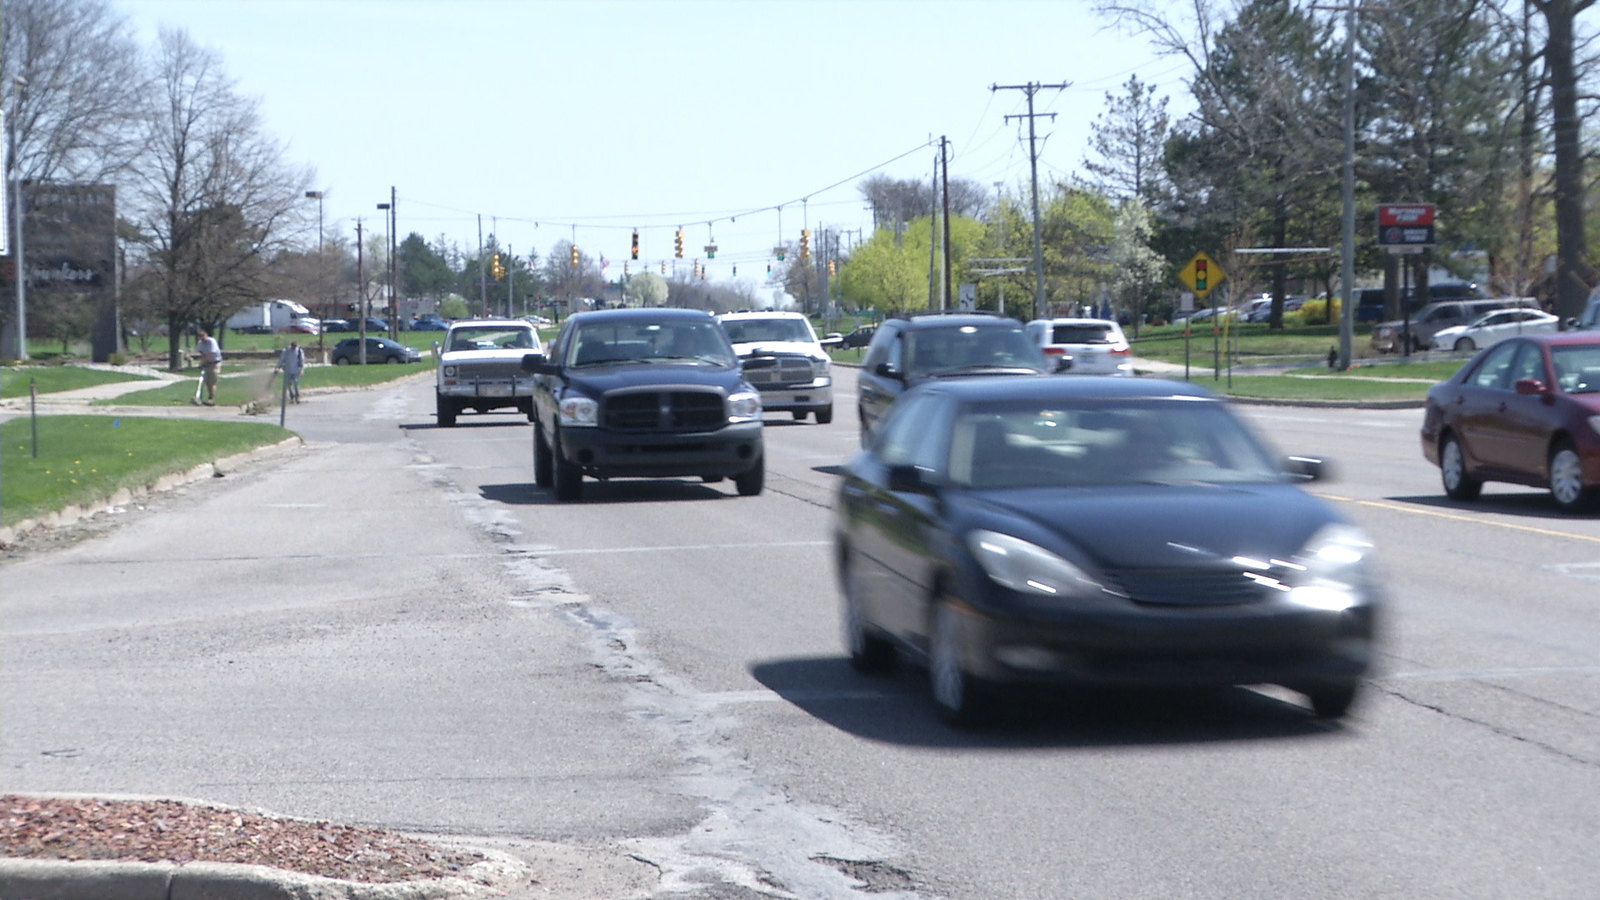 Pedestrian Safety A Concern for Residents of Meridian Township